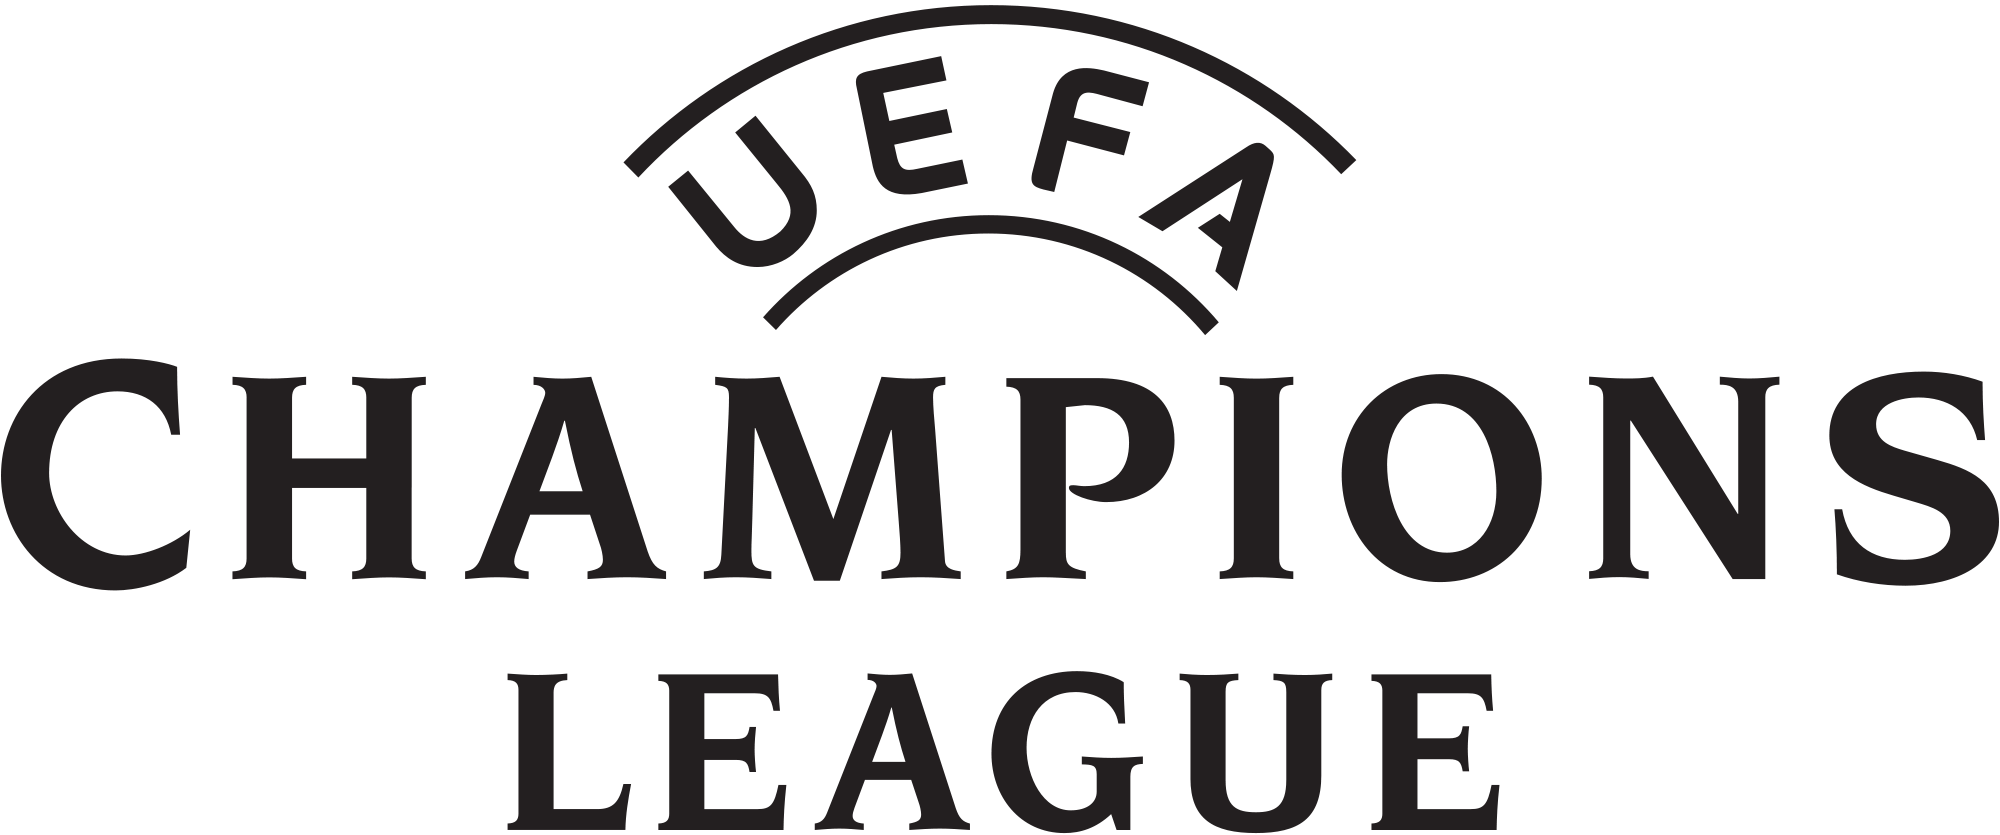 Download Uefa Champions League Logo Png White